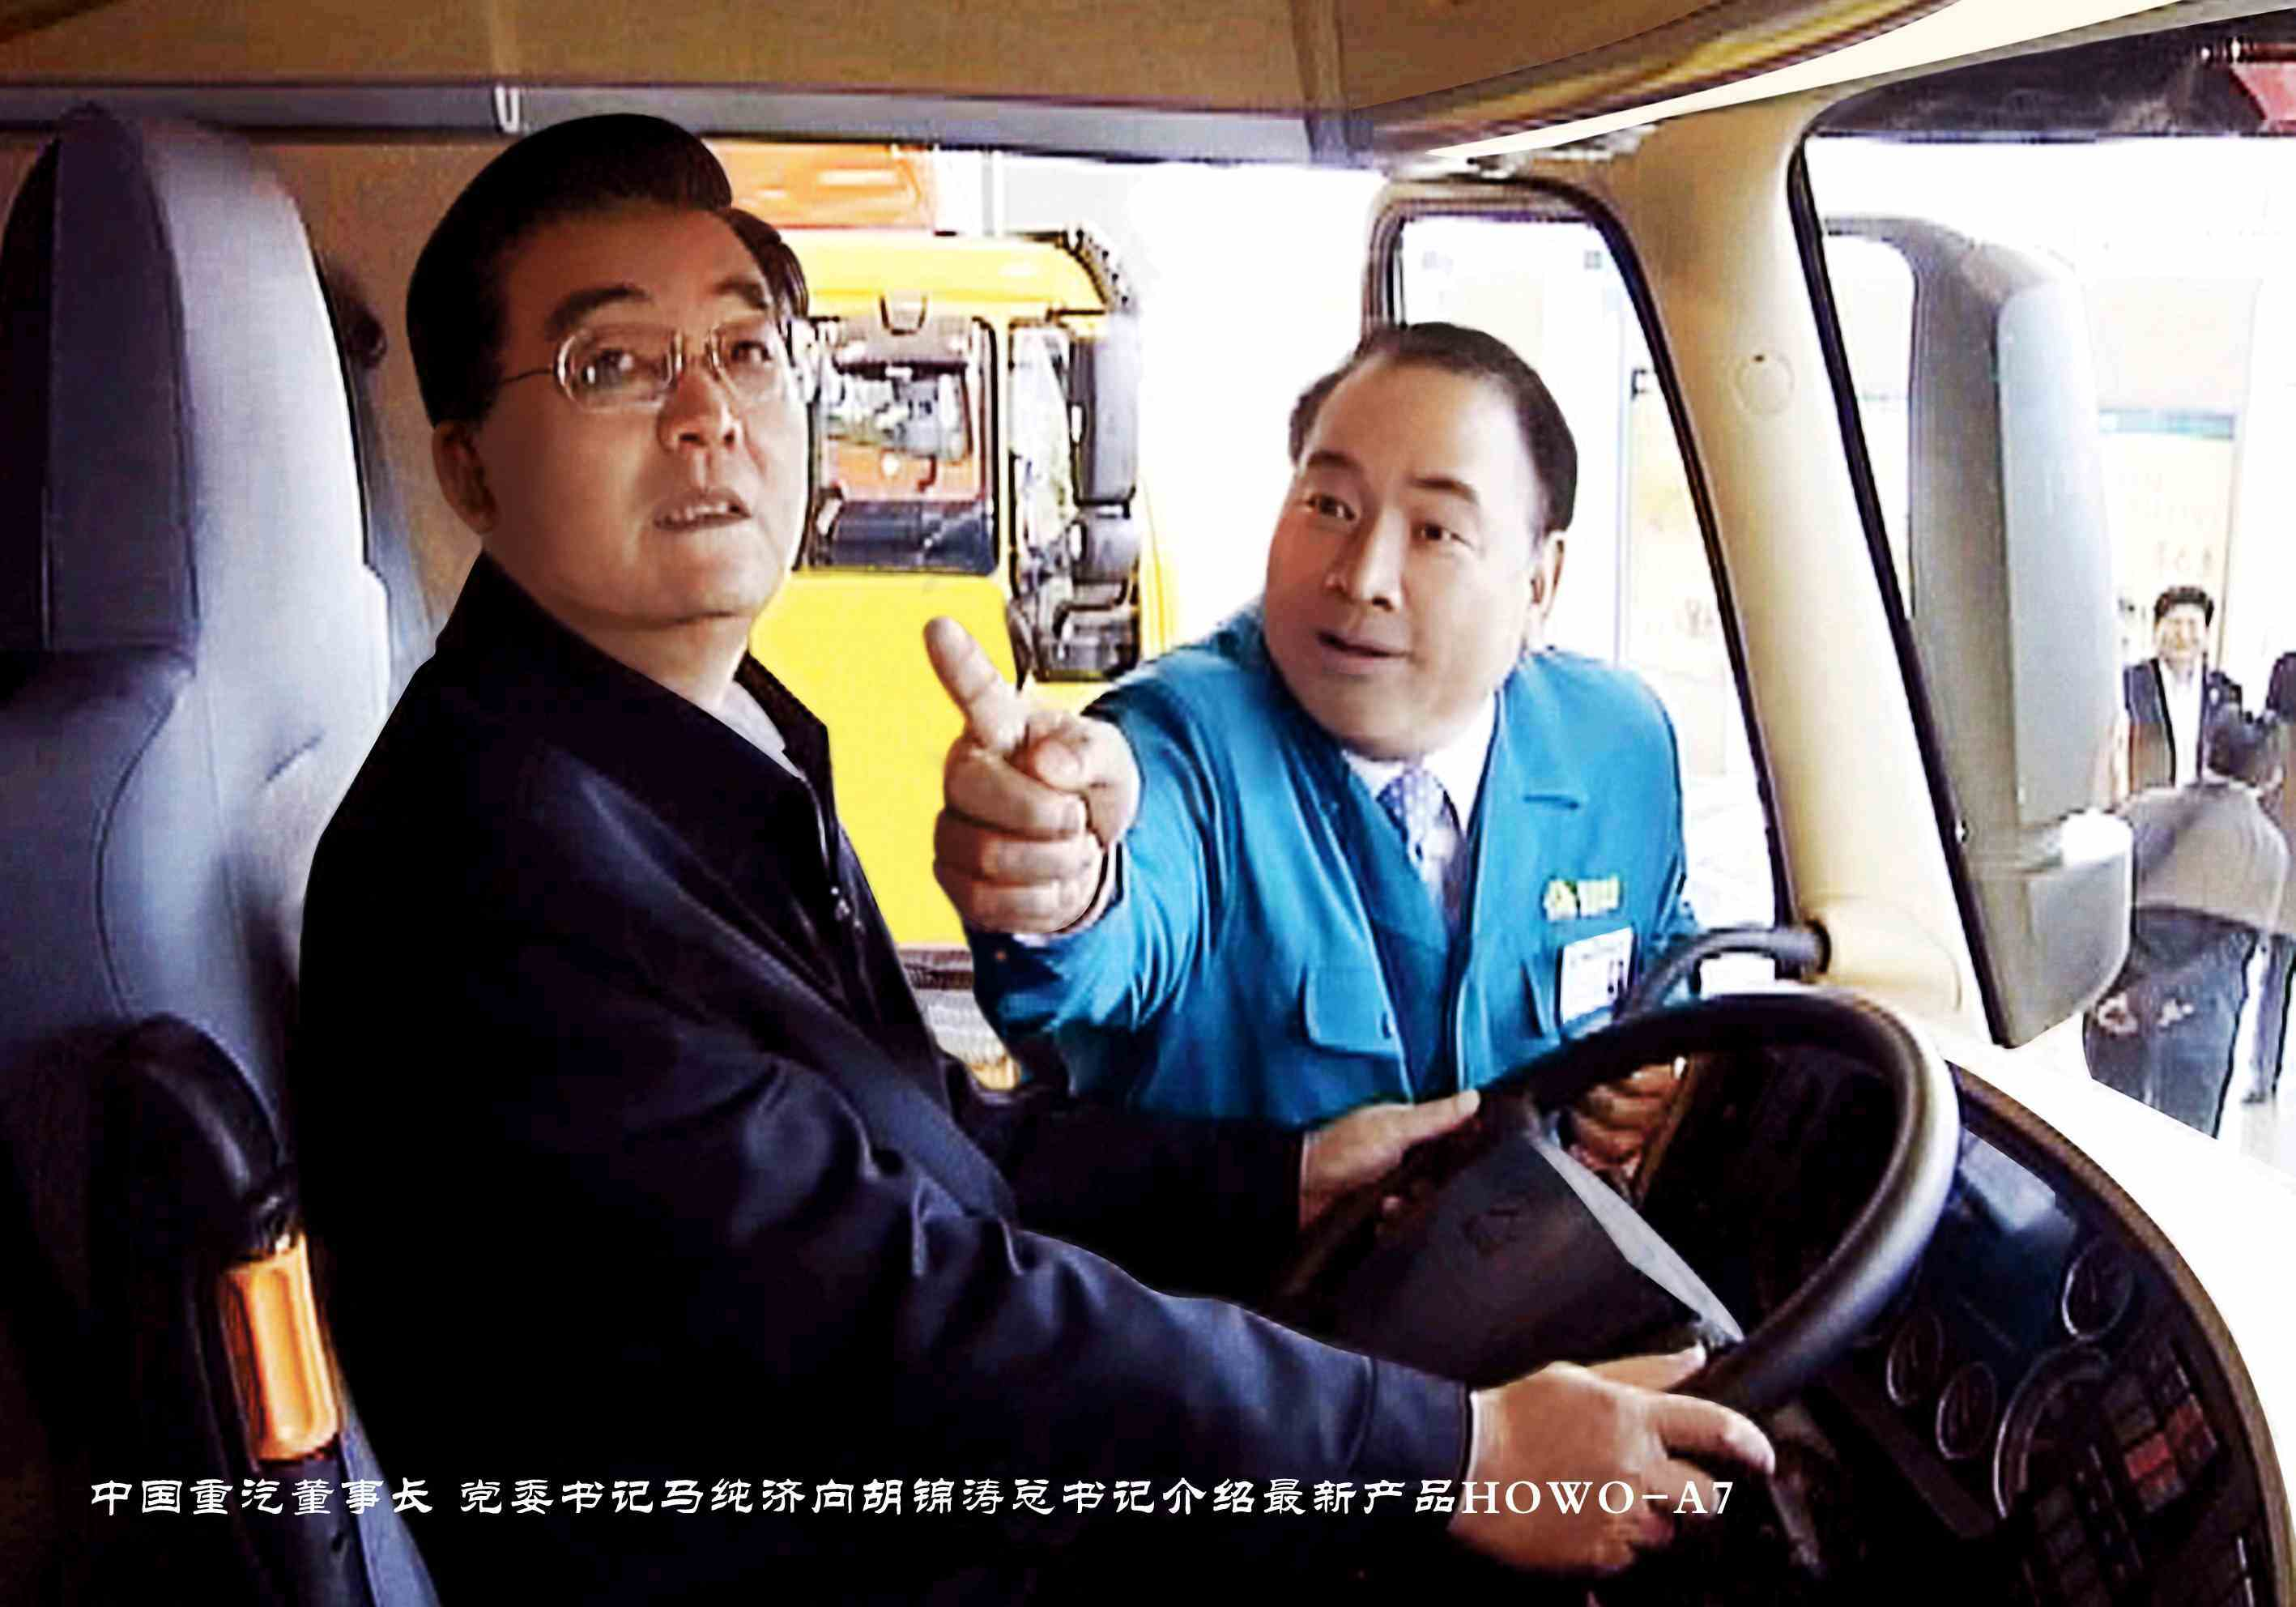 SINOTRUK president introduce new truck HOWO A7 to the State chairman Hujintao